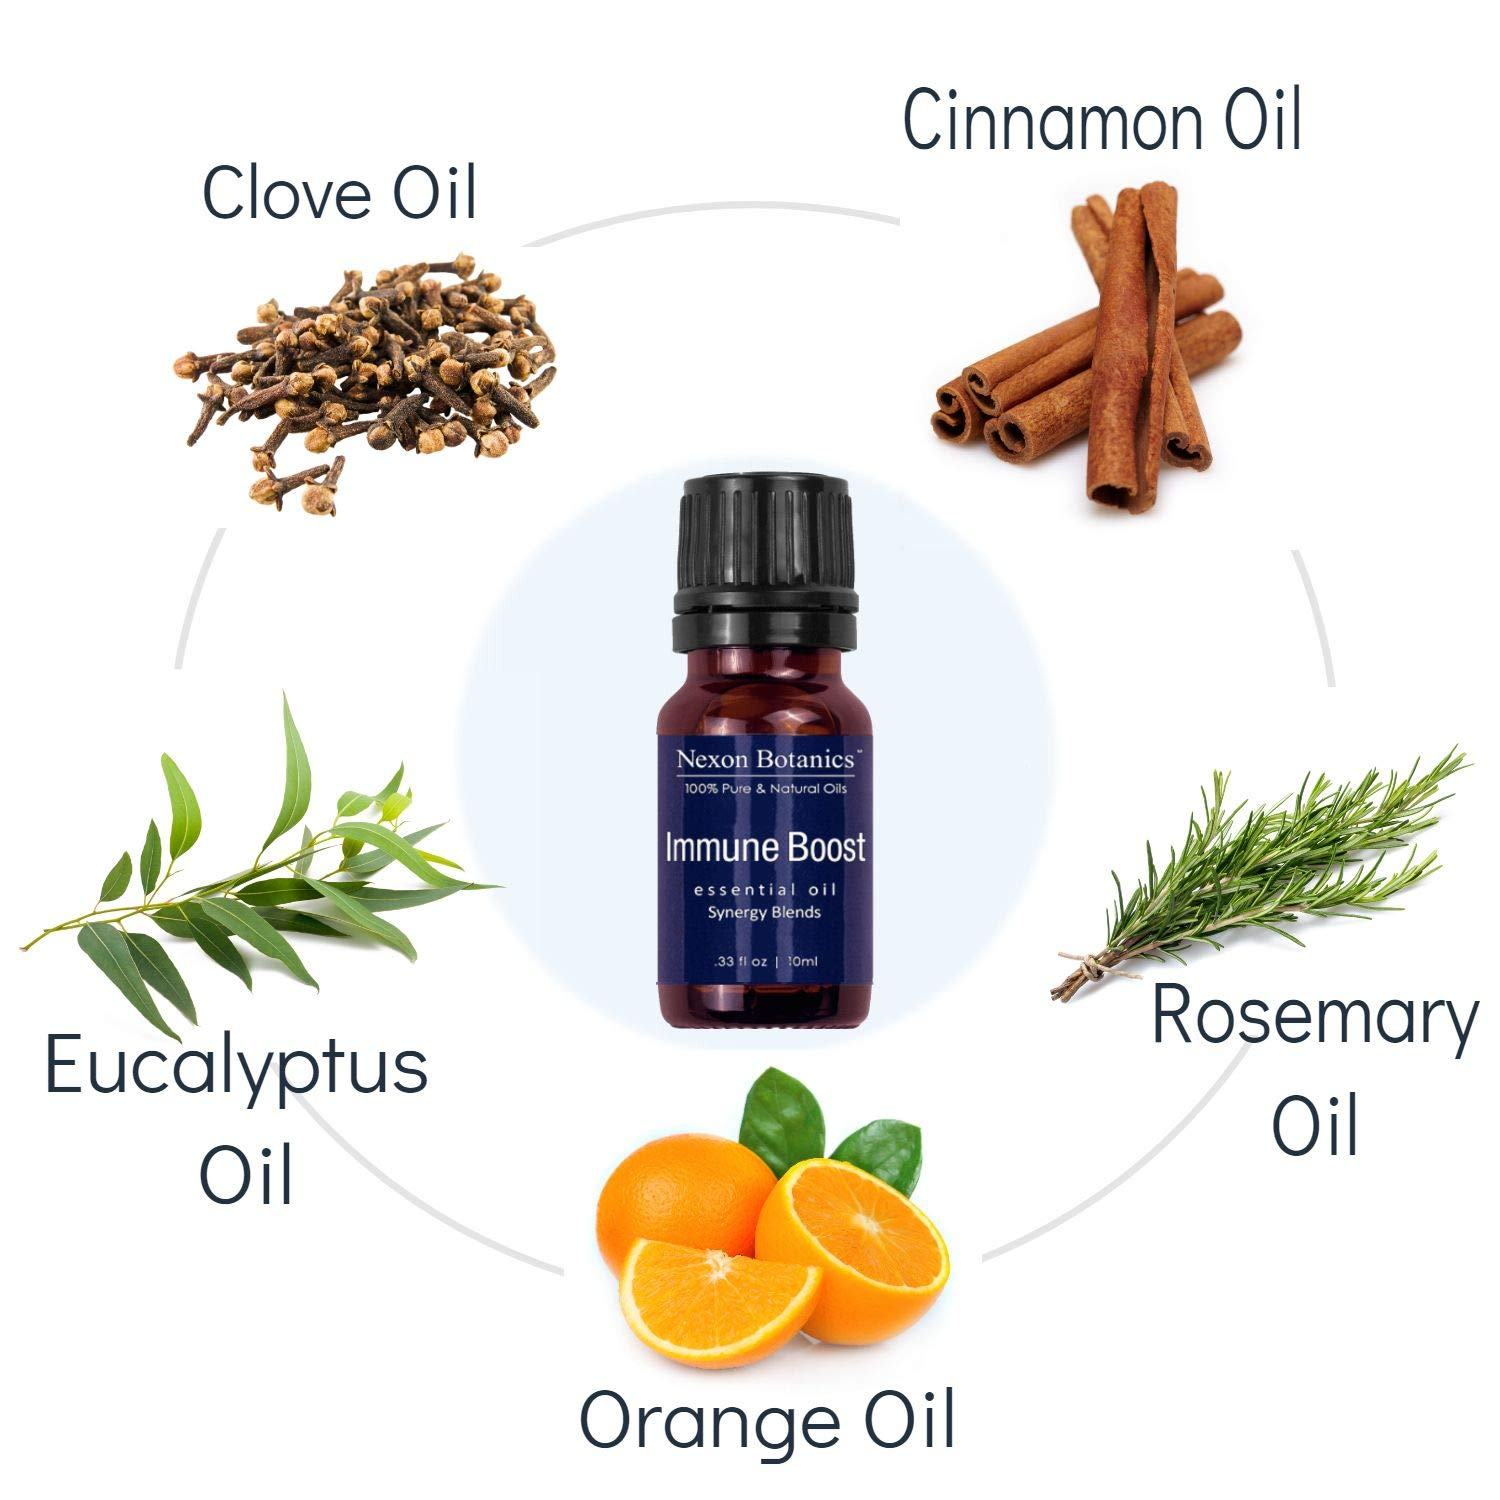 Aromatherapy Essential Oil Synergy Blend Set - 100% Pure & Natural Undiluted Therapeutic Grade Blends Include Breathe Ease, Health Plus, Zen Head, Muscle Ease, Zen Sleep, Immune Boost Oils 6 x 10 ml by Nexon Botanics (Image #3)